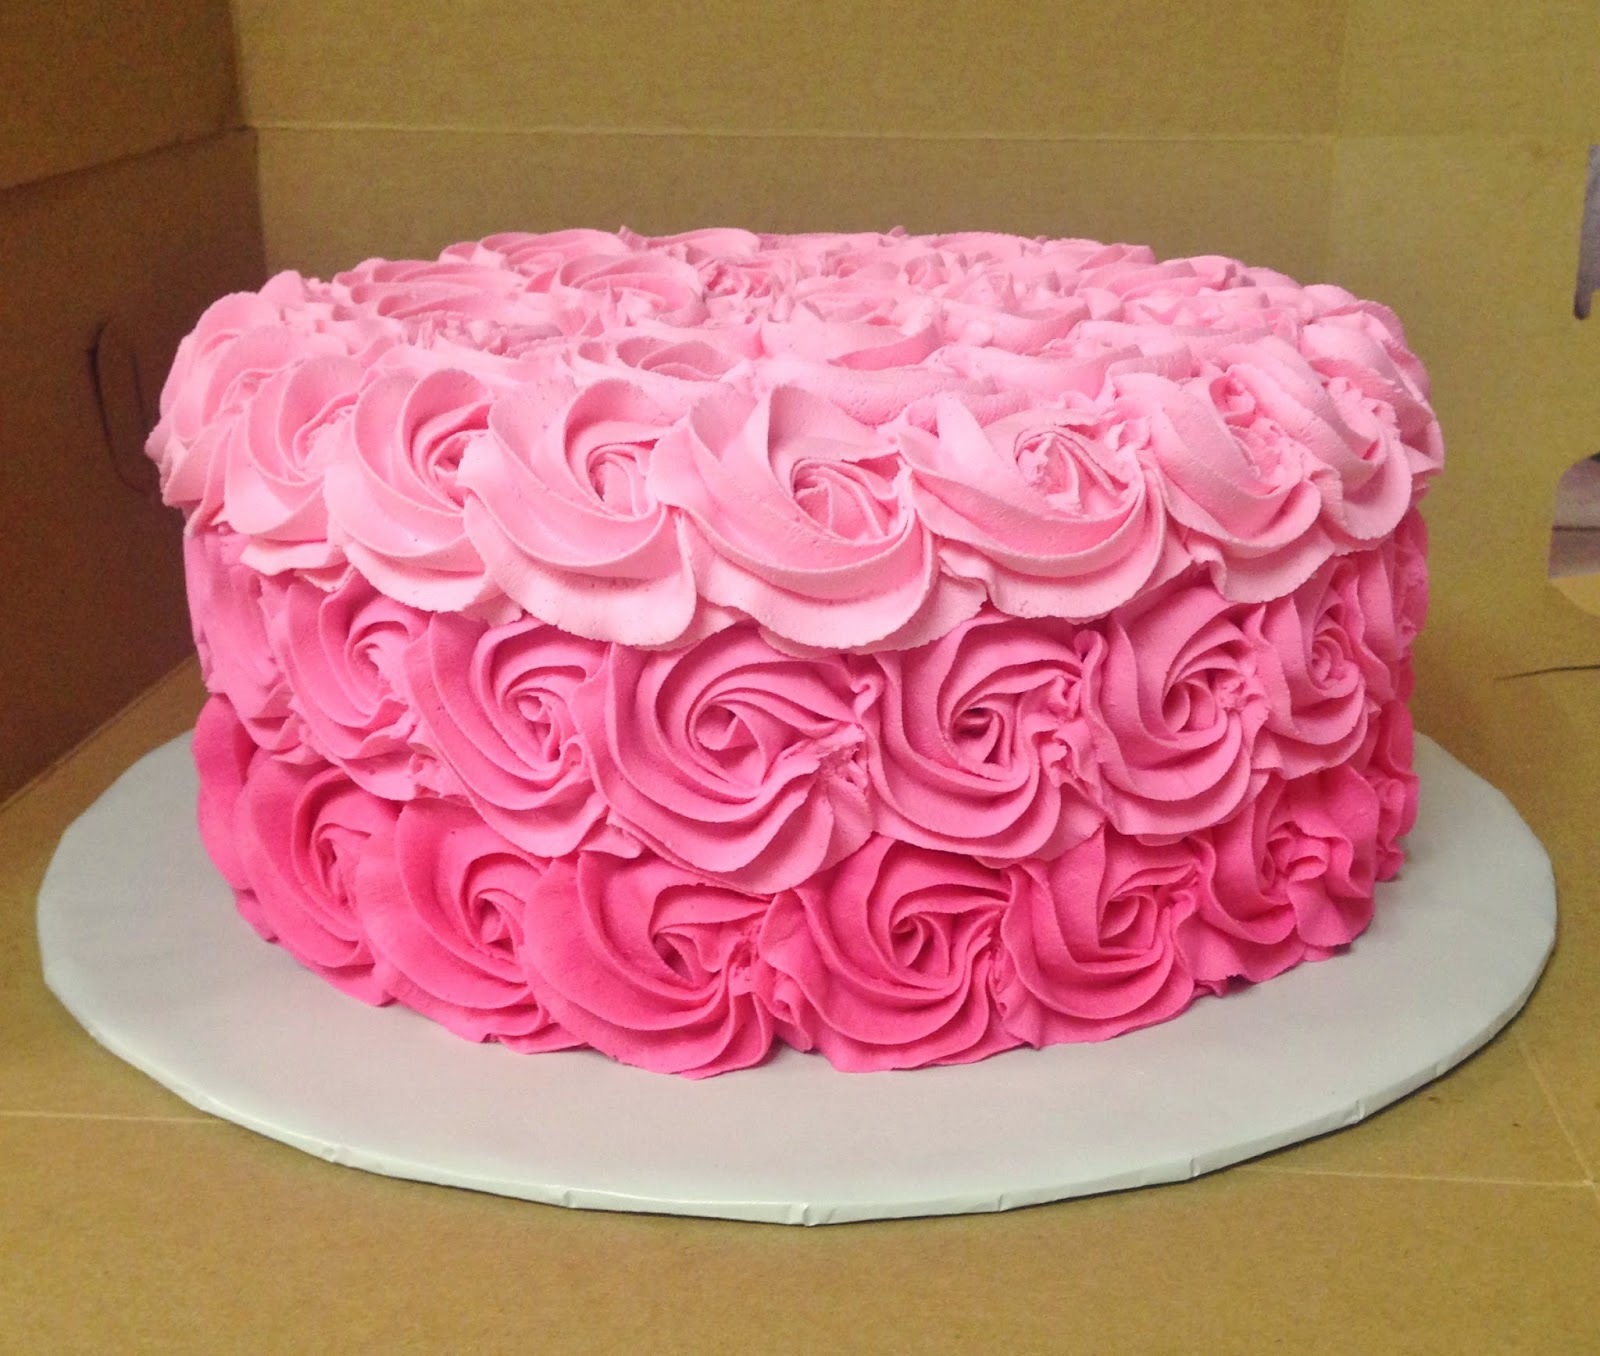 Cakes by Mindy: Pink Ombre Rosette Cake 10